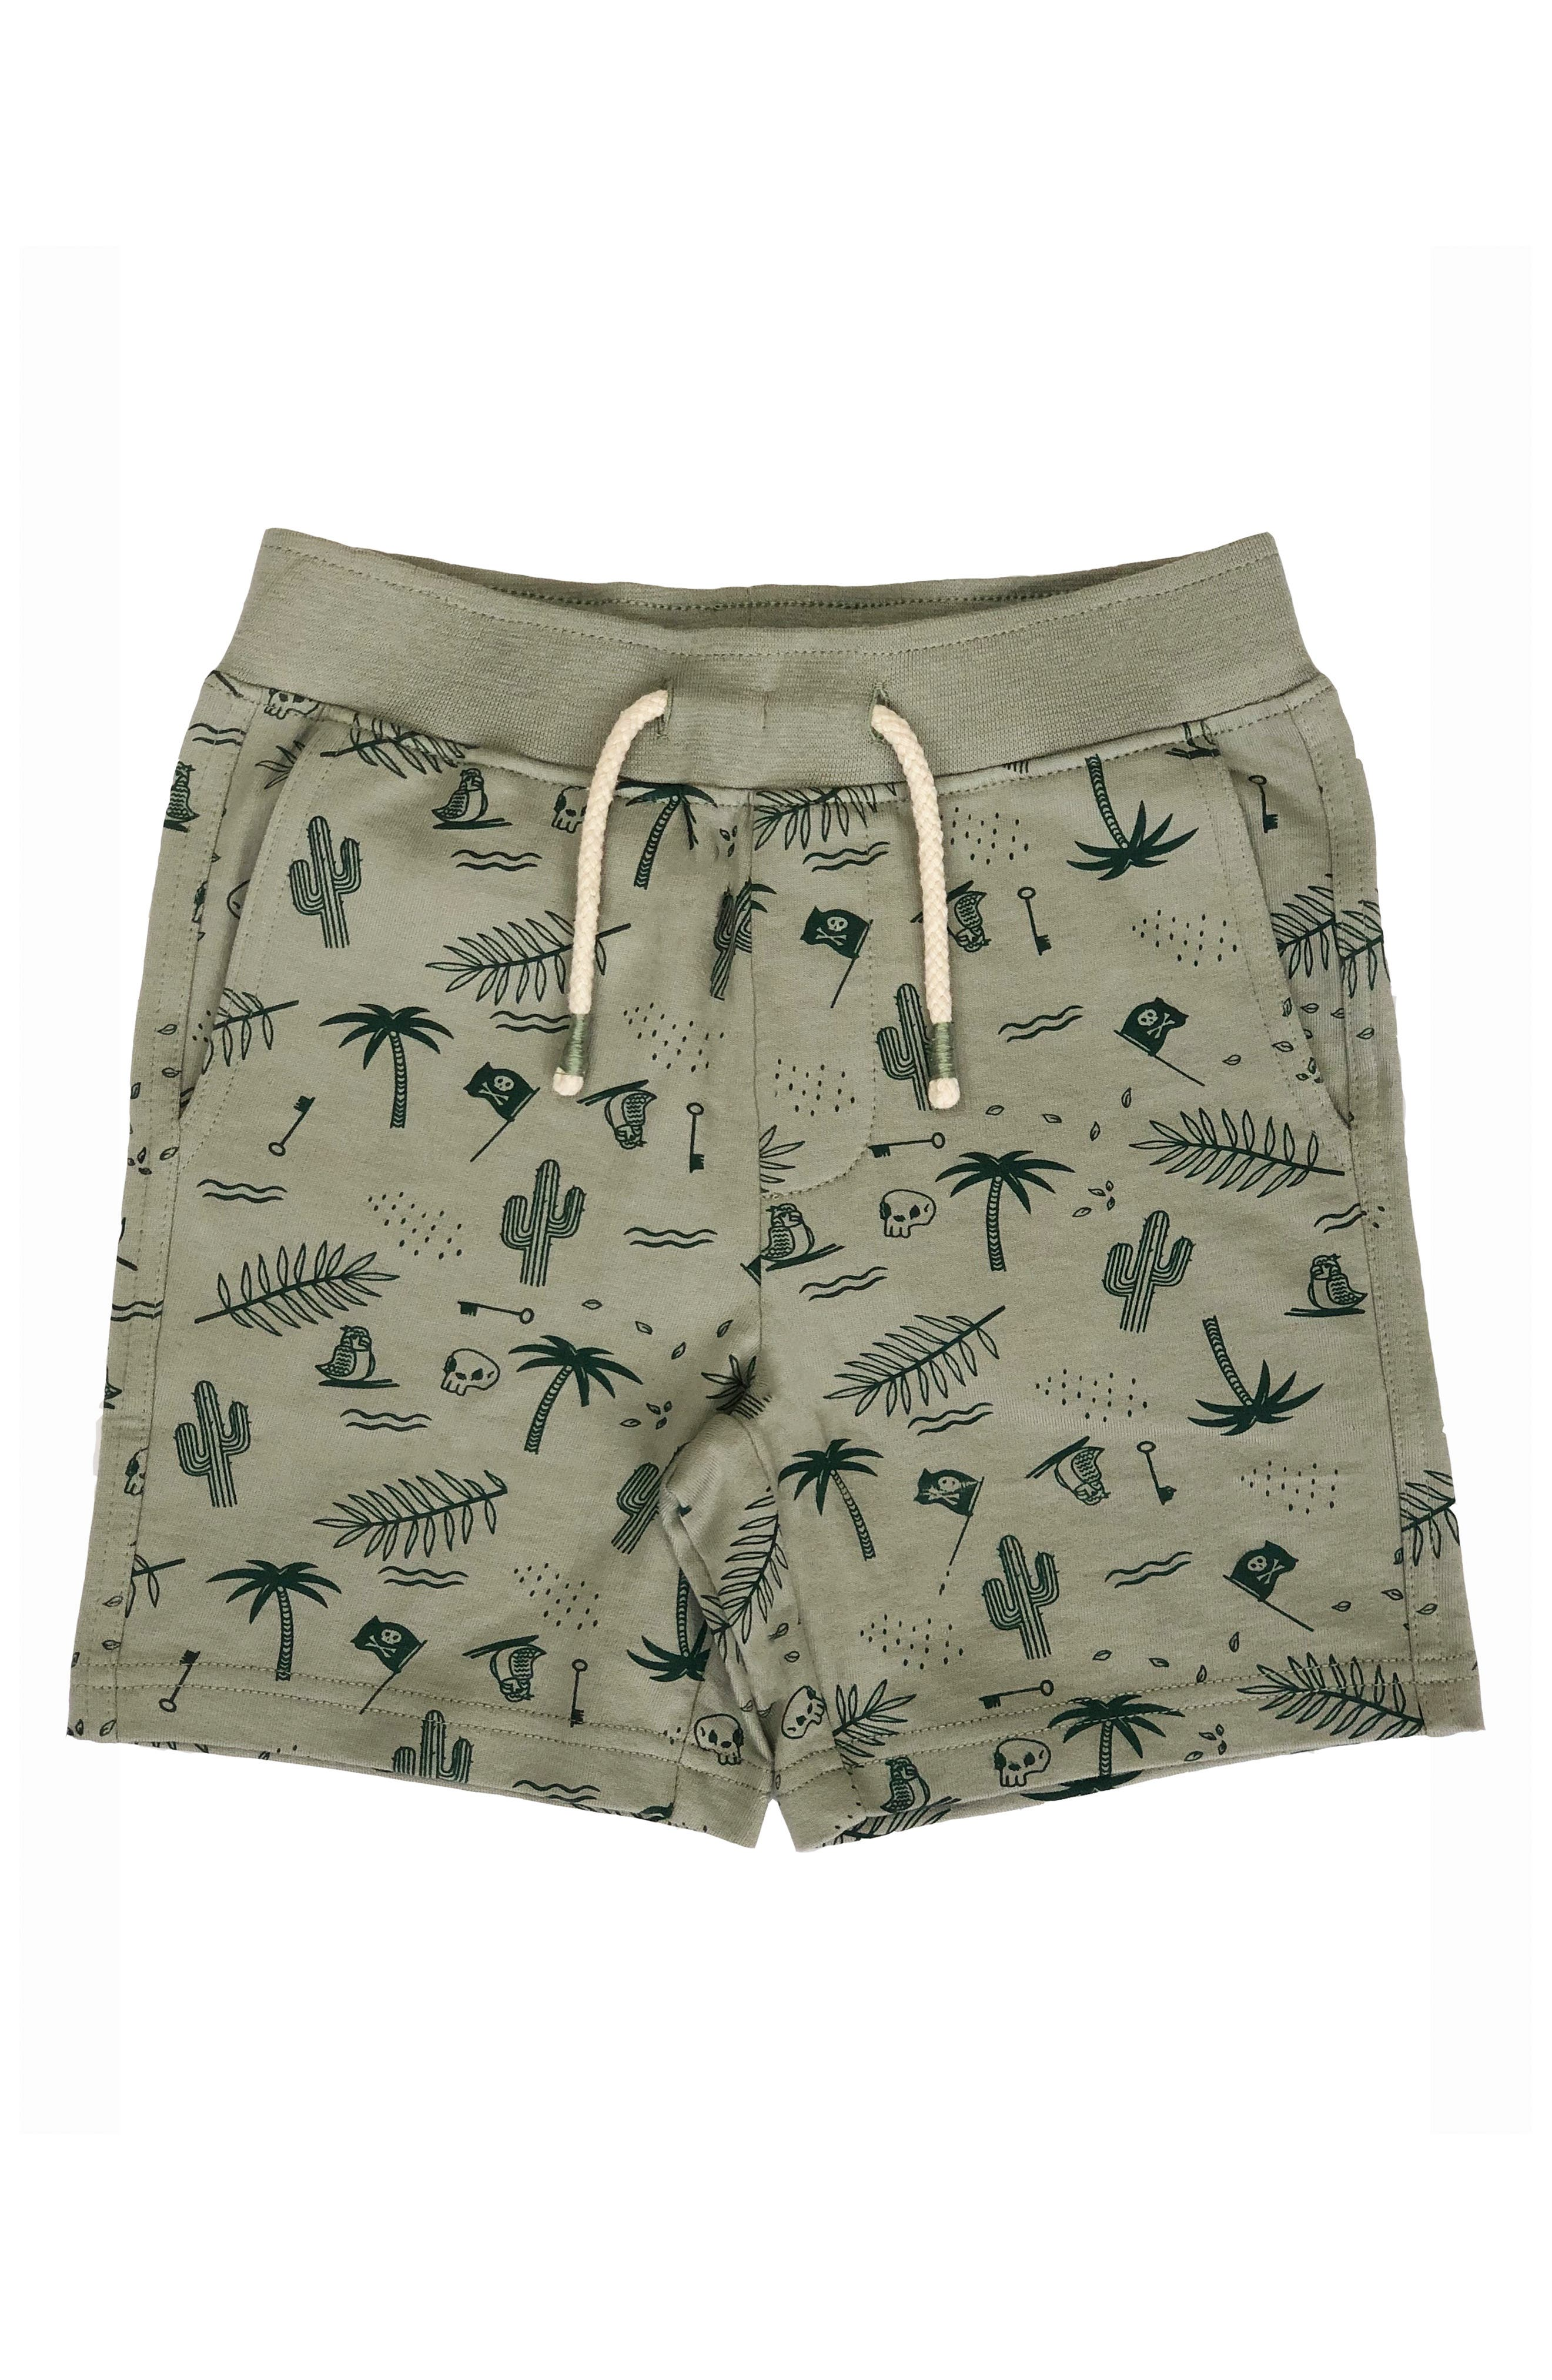 REBEL JAMES & CHARLI Pirate Print Pull-On Shorts, Main, color, OLIVE